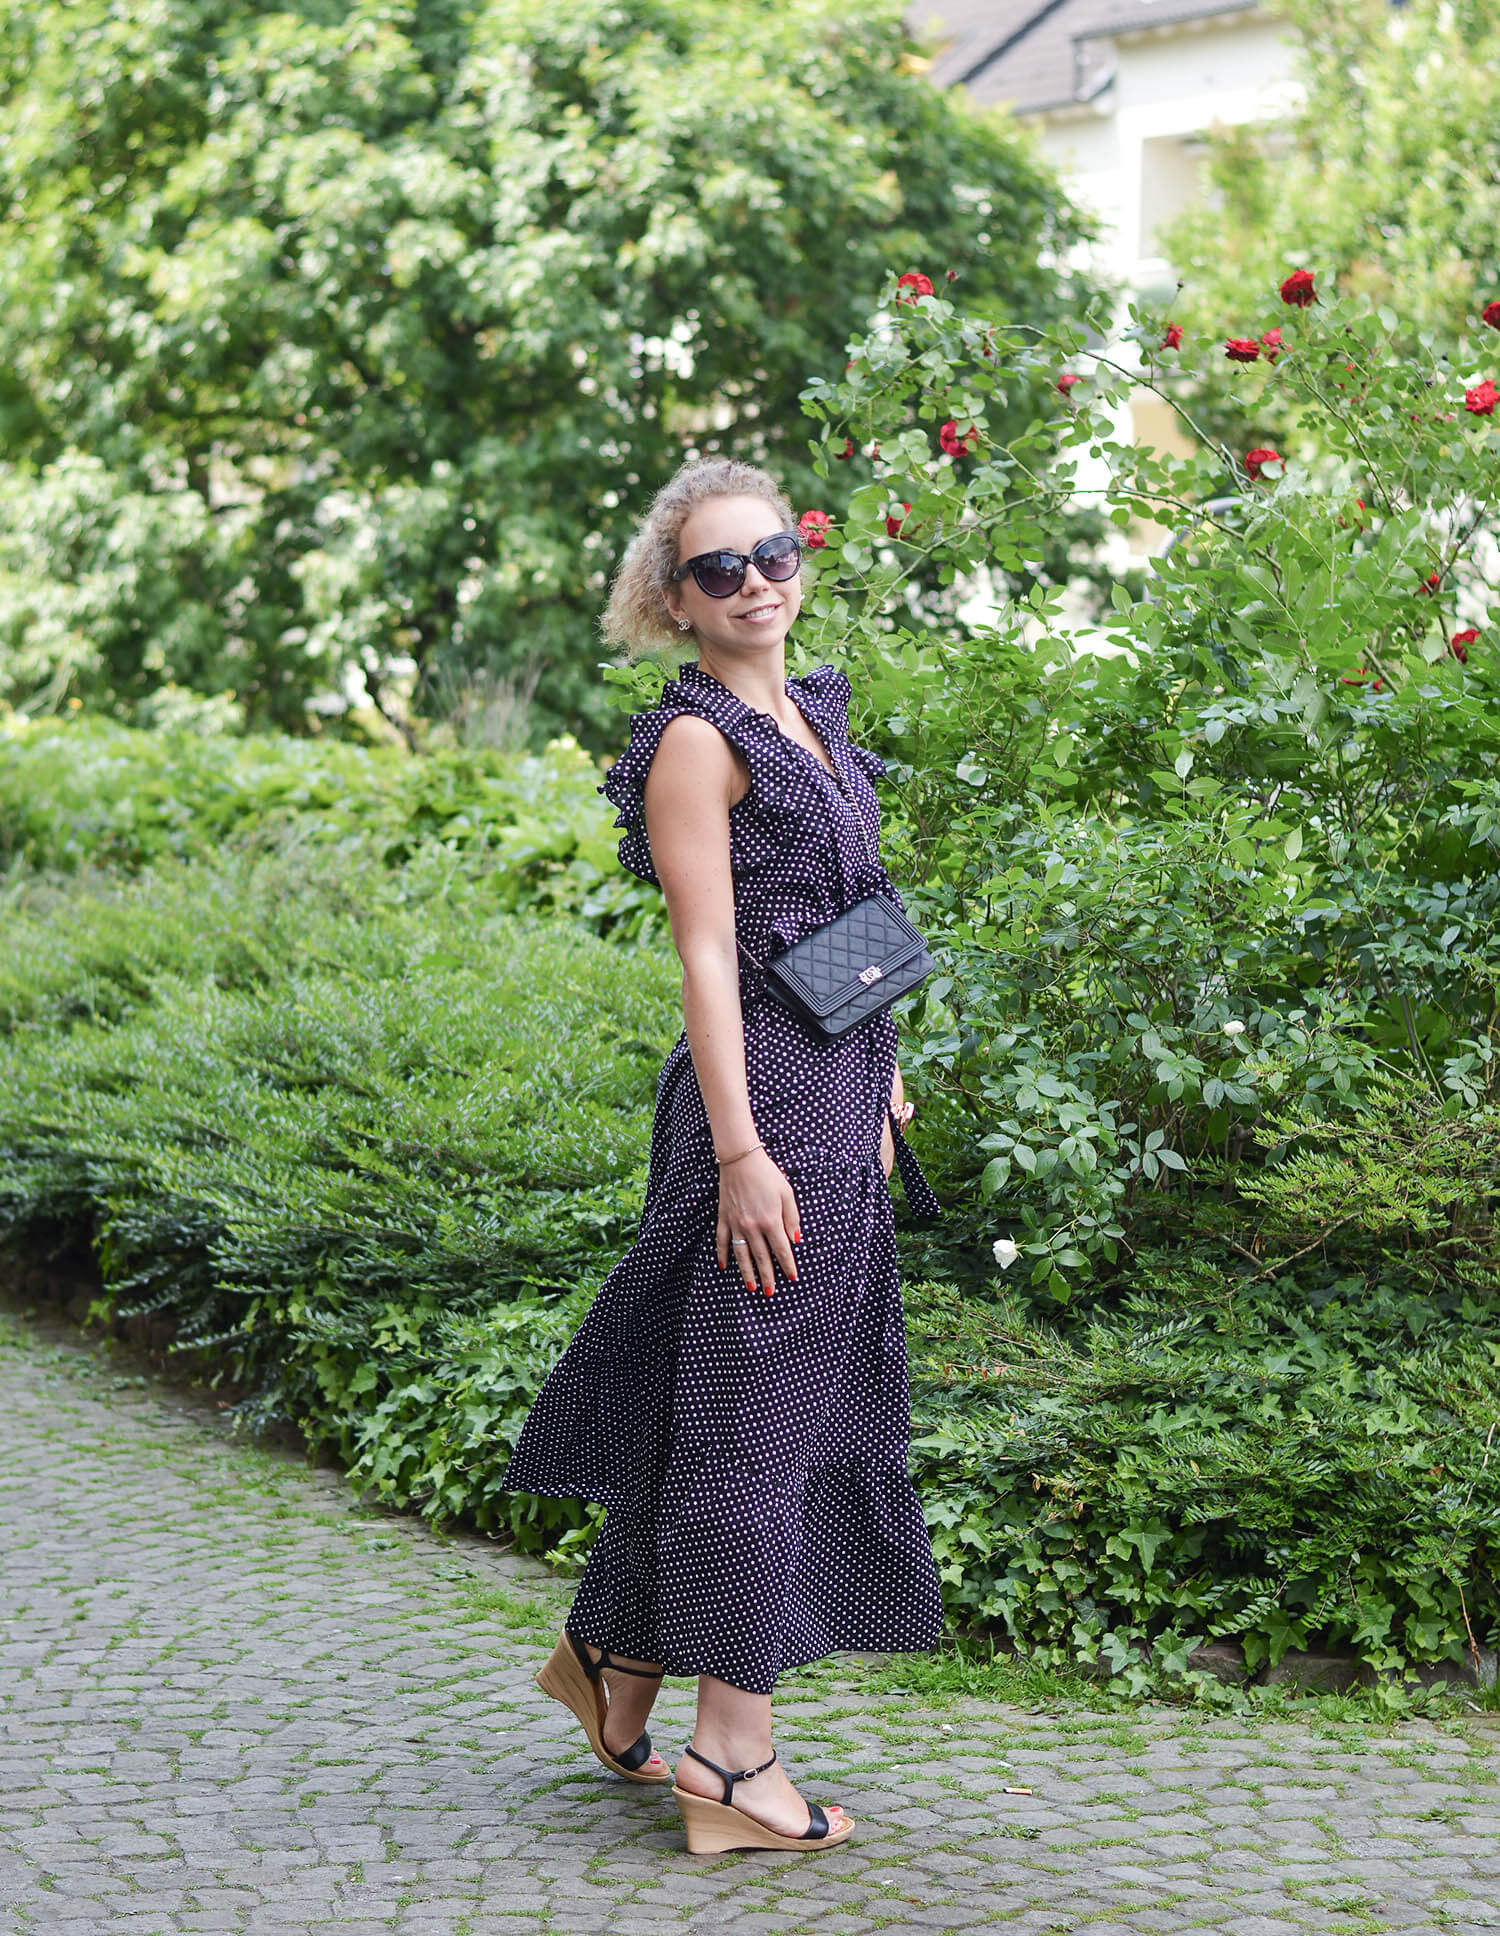 Polka-Dots-Maxidress-Summer-Outfit-Kationette-Fashionblogger-NRW